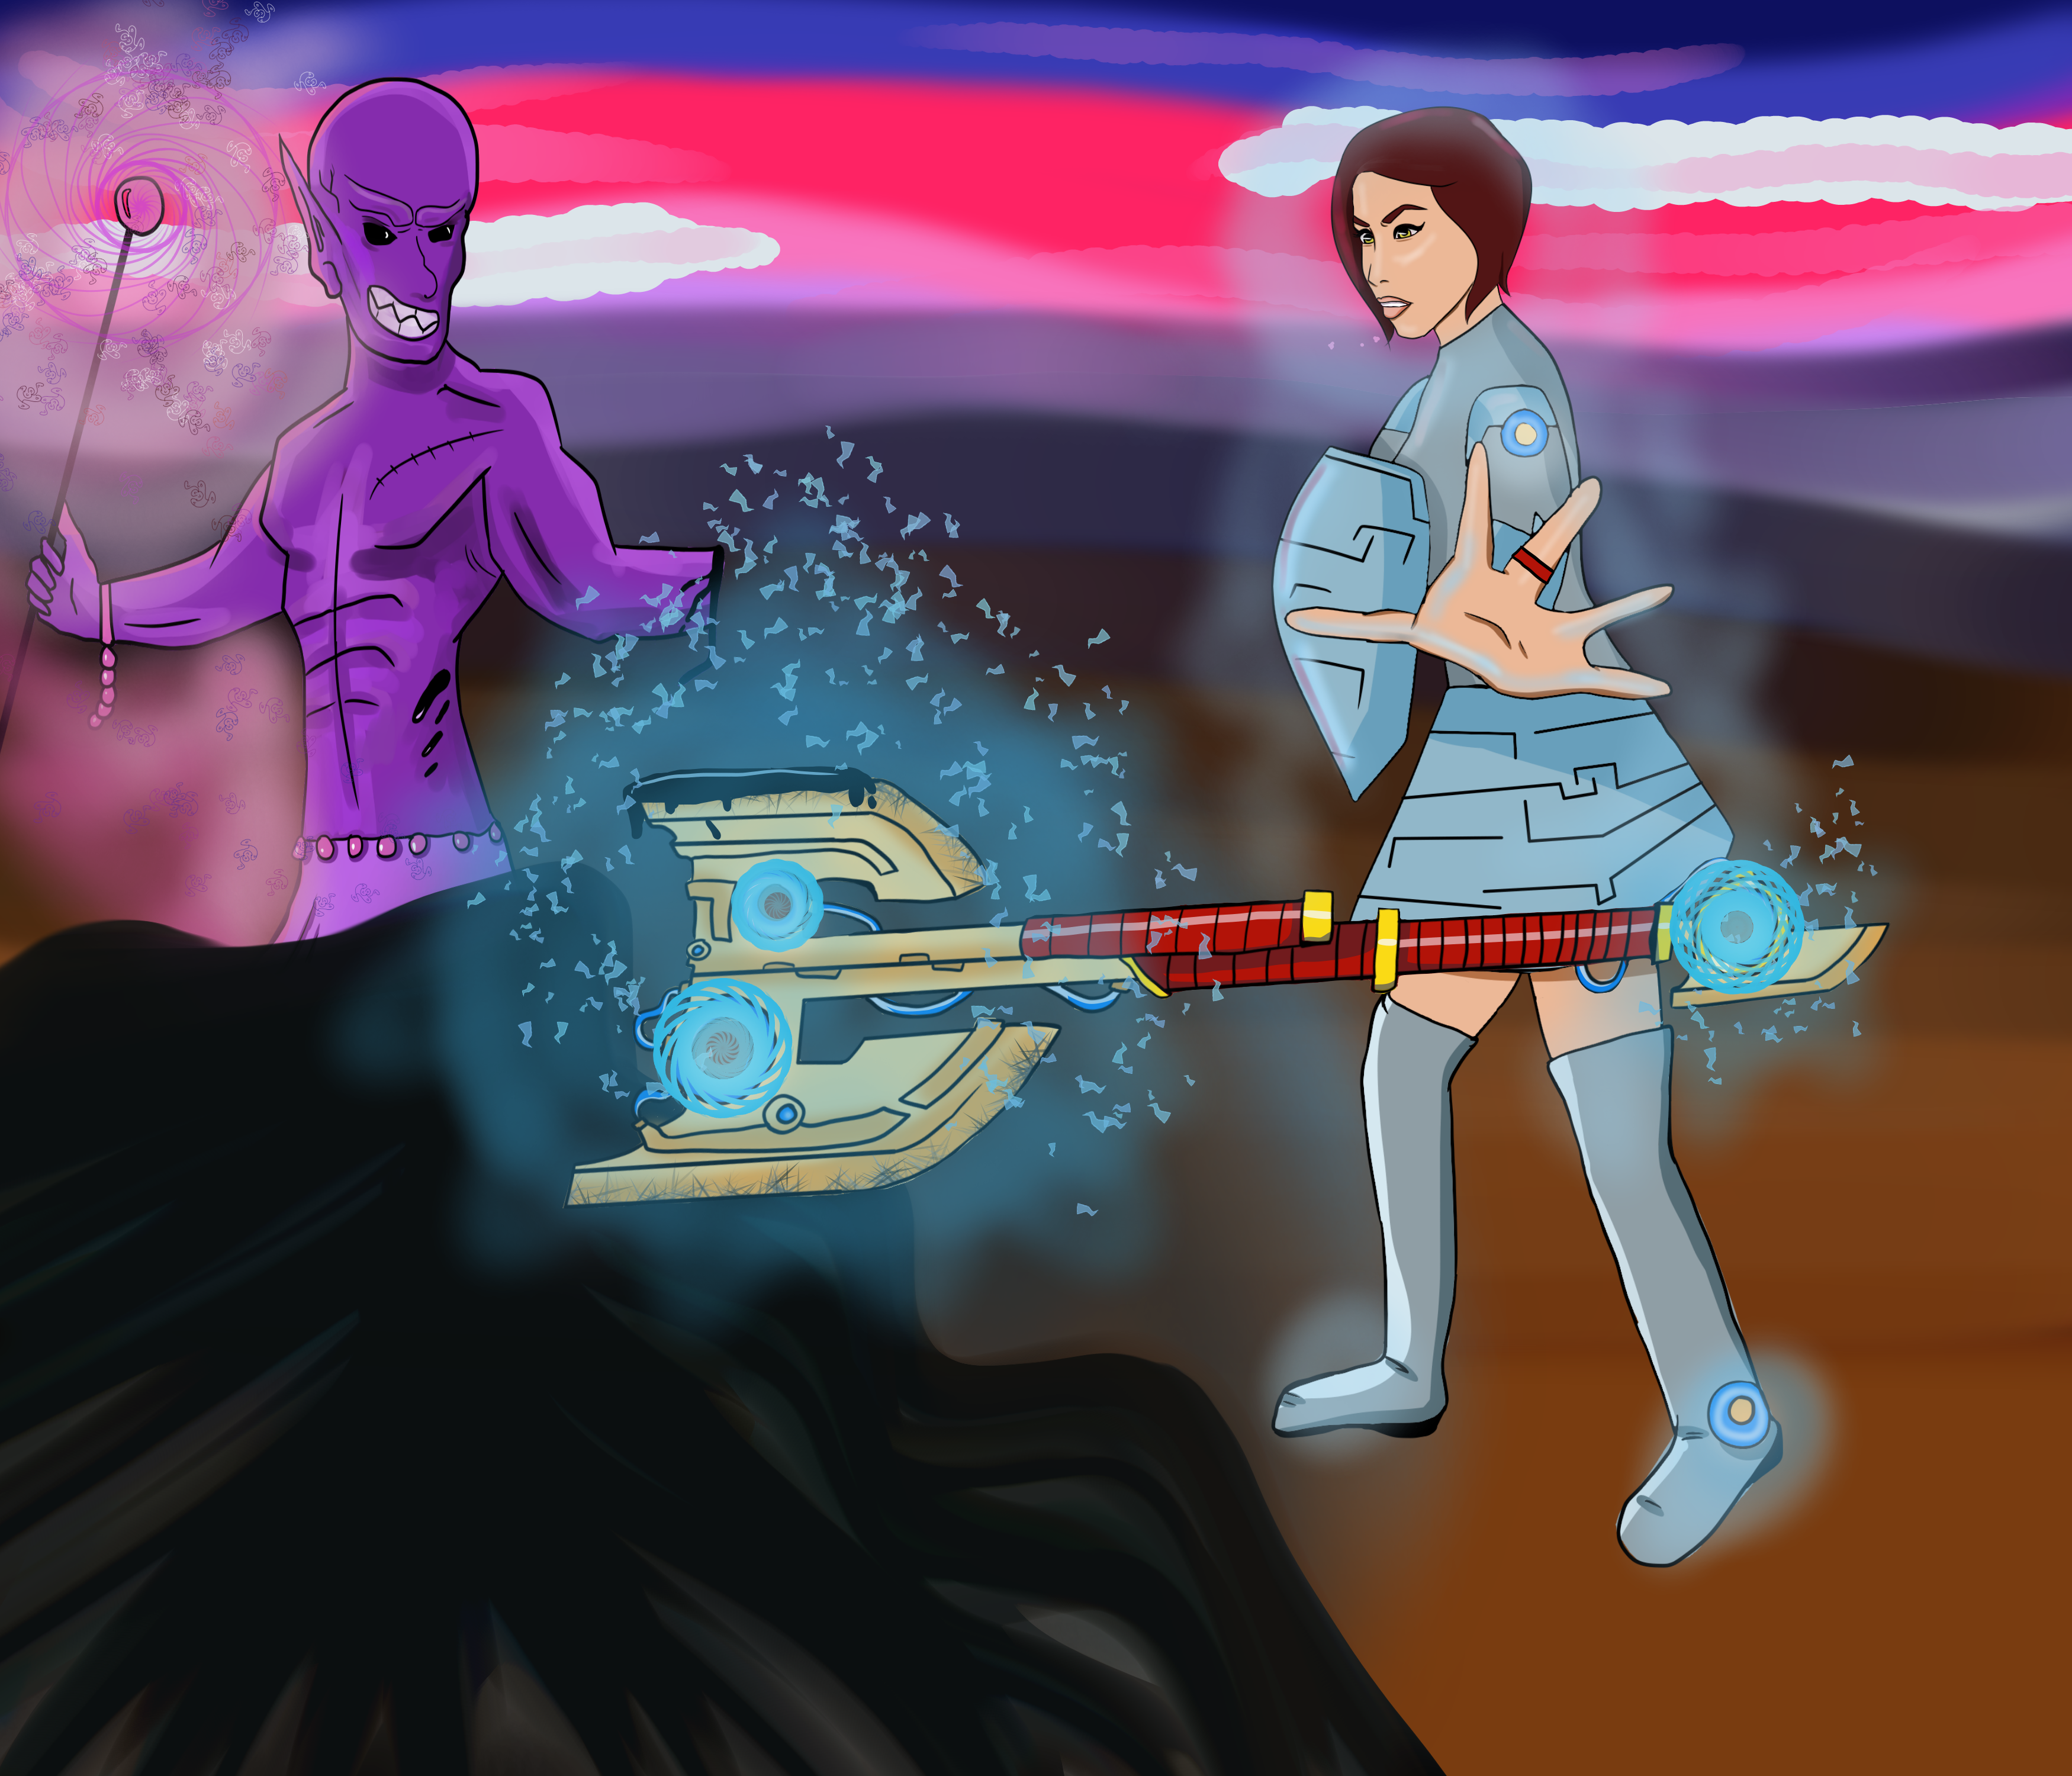 Epic Magic Sci Fi Axe Battle By Bloodbornchild On Newgrounds